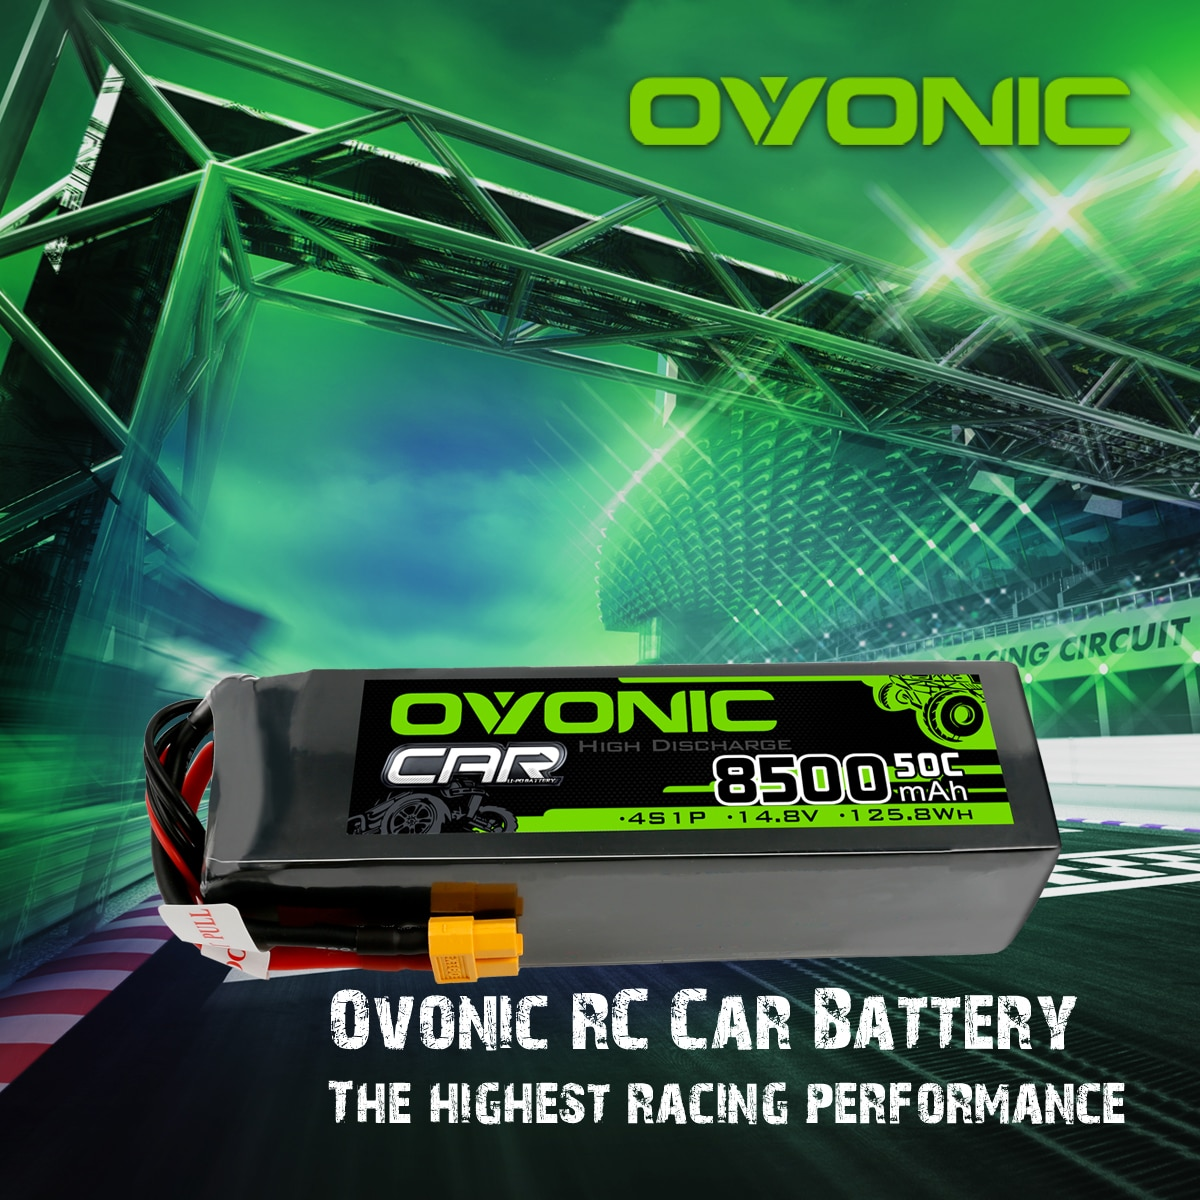 Ovonic 8500 Lipo Batteries 50C 4S 14.8V LiPo Battery With XT60 Plug For Xmaxx 8S RC Car Truck enlarge